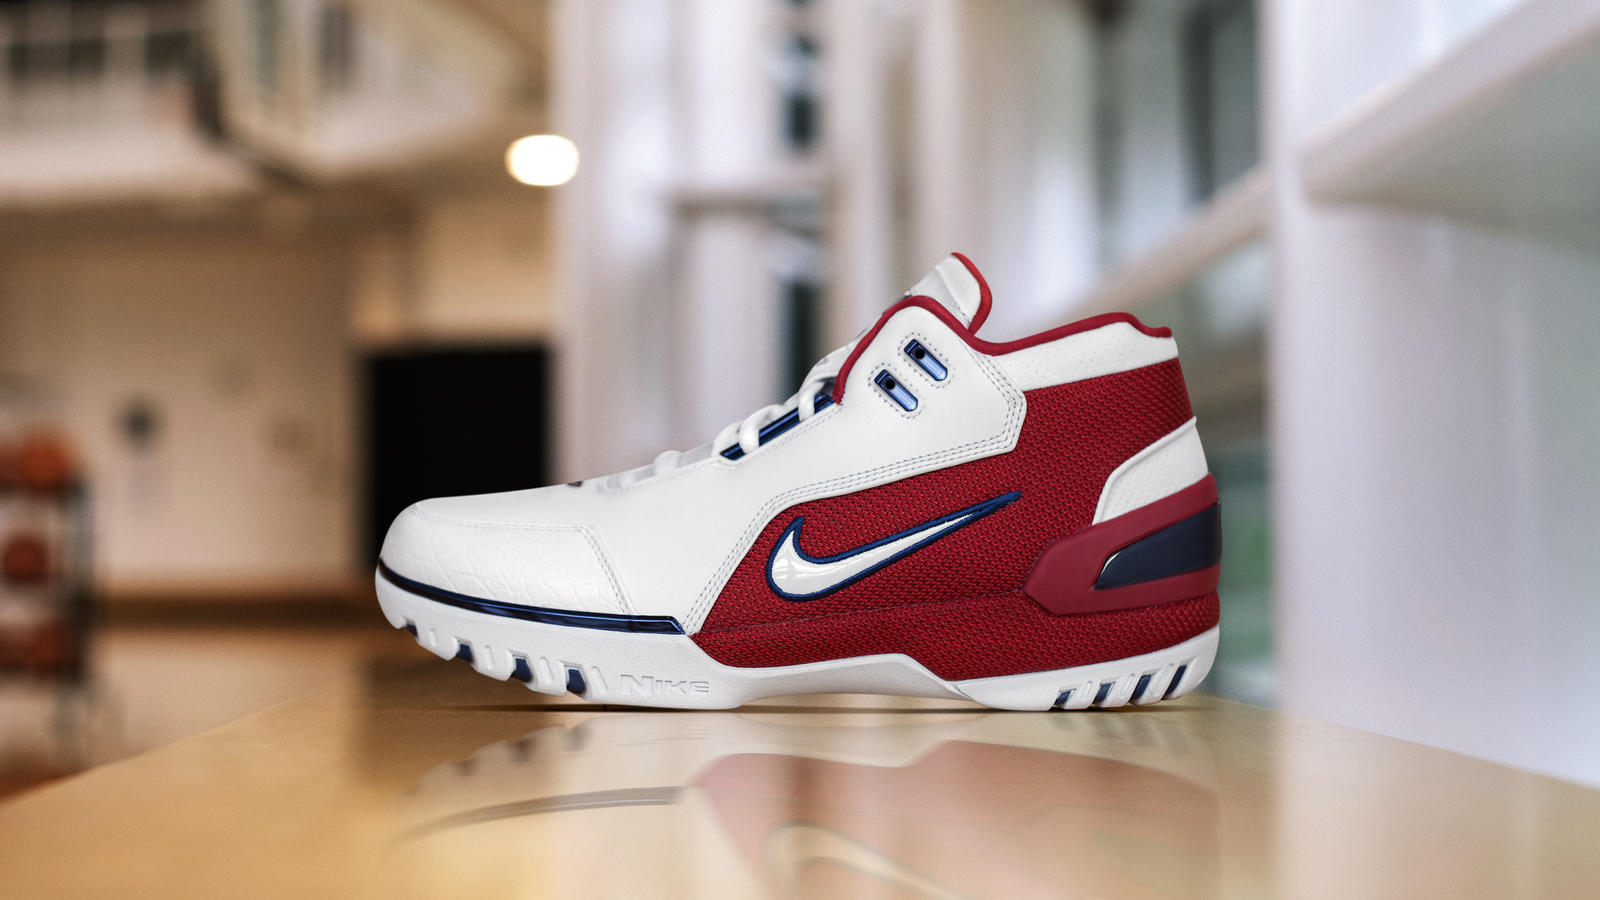 Air zoom generation 3 hd 1600